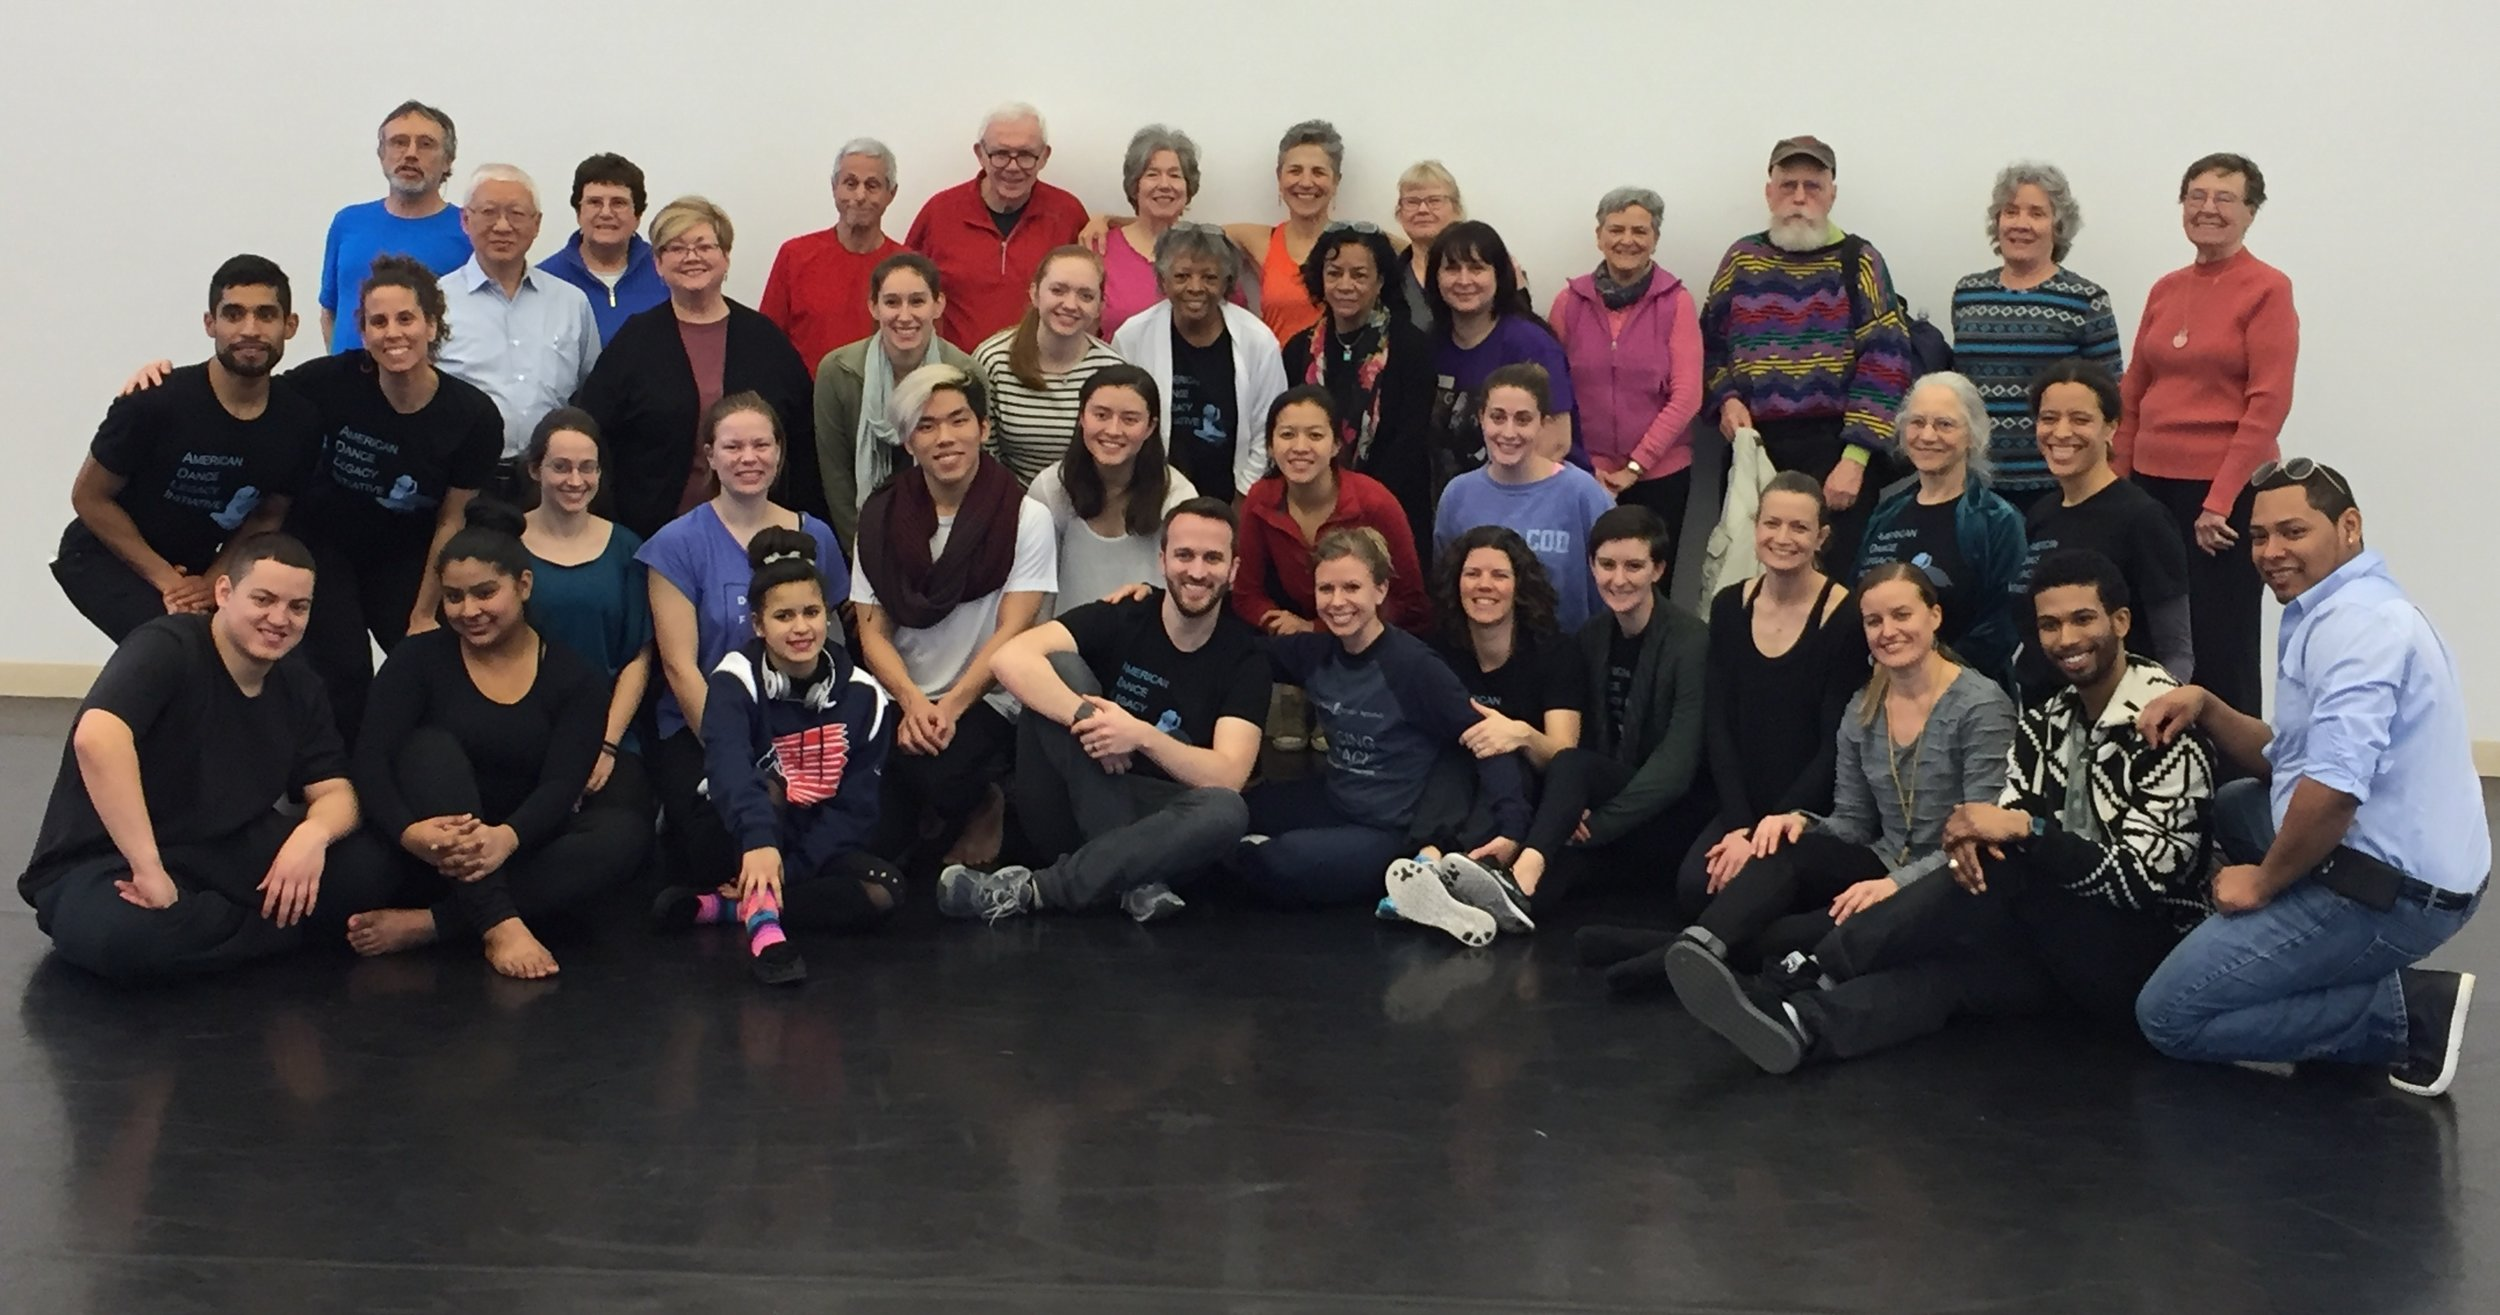 DAPpers, Dancing with PArkinson's, Dancing Legacy and Brown dancers after a full day of dancing at the Paul Taylor Dance Studio.